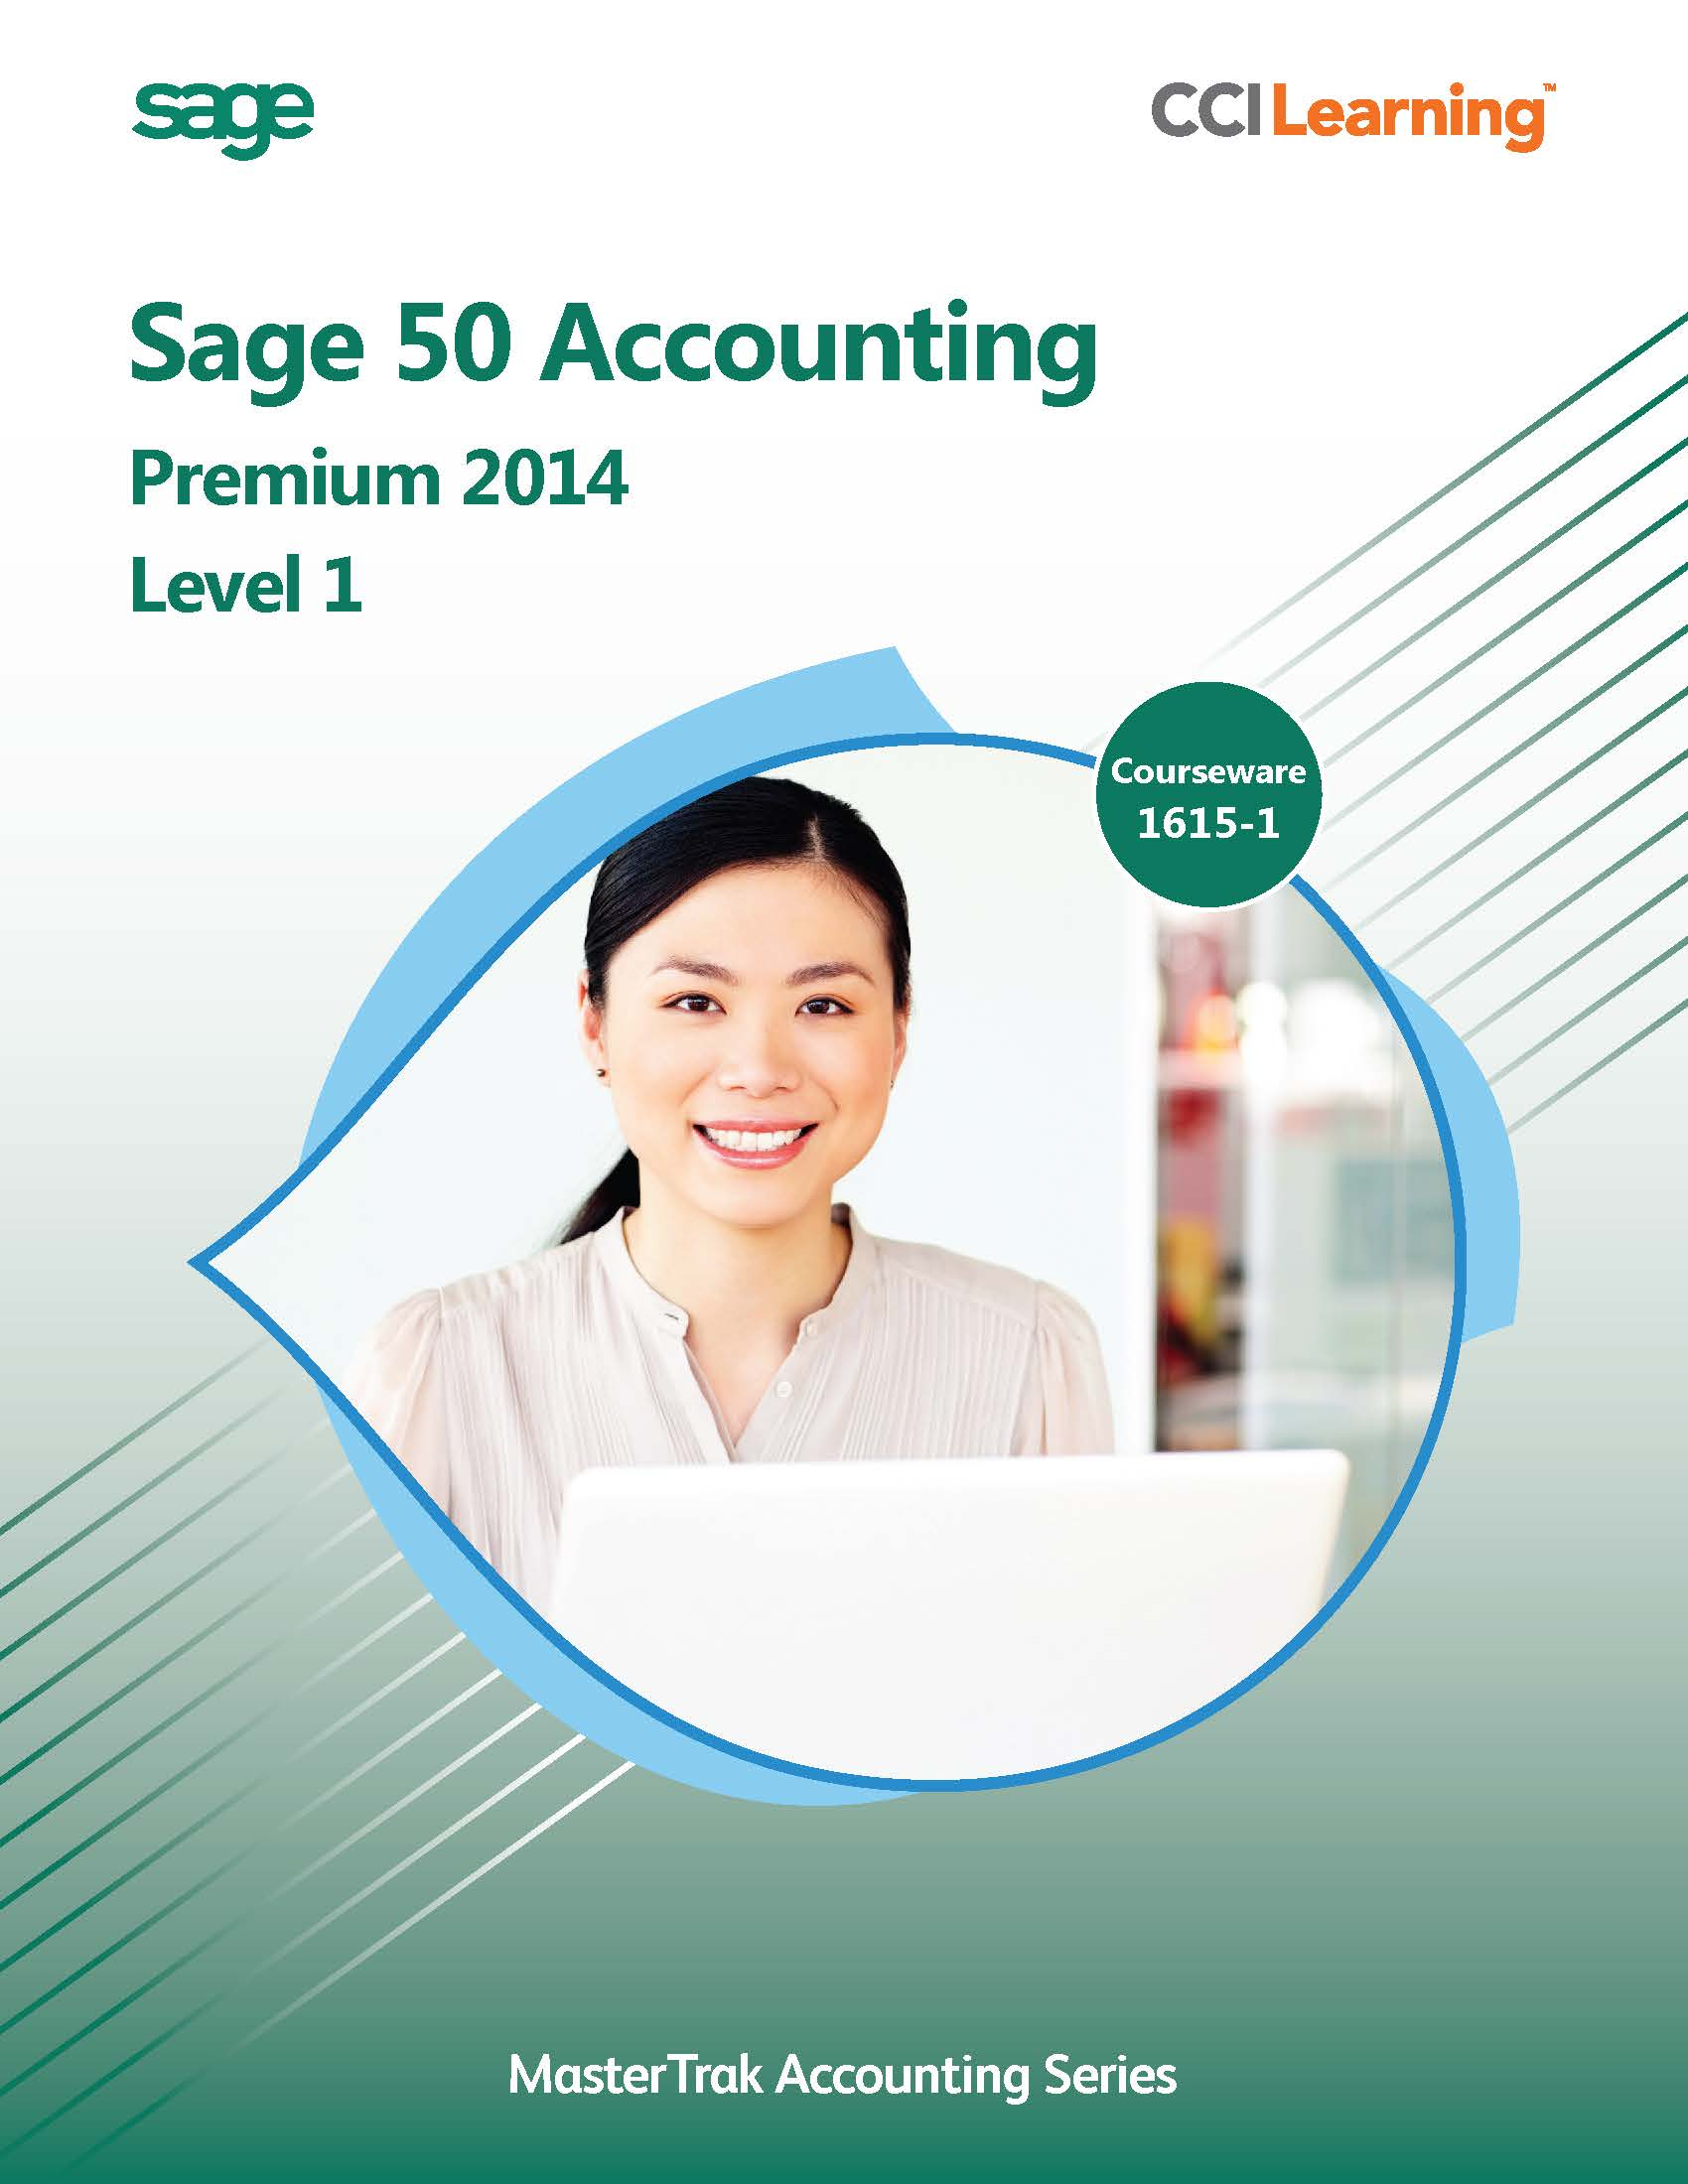 Sage 50 Premium Accounting 2014 Level 1